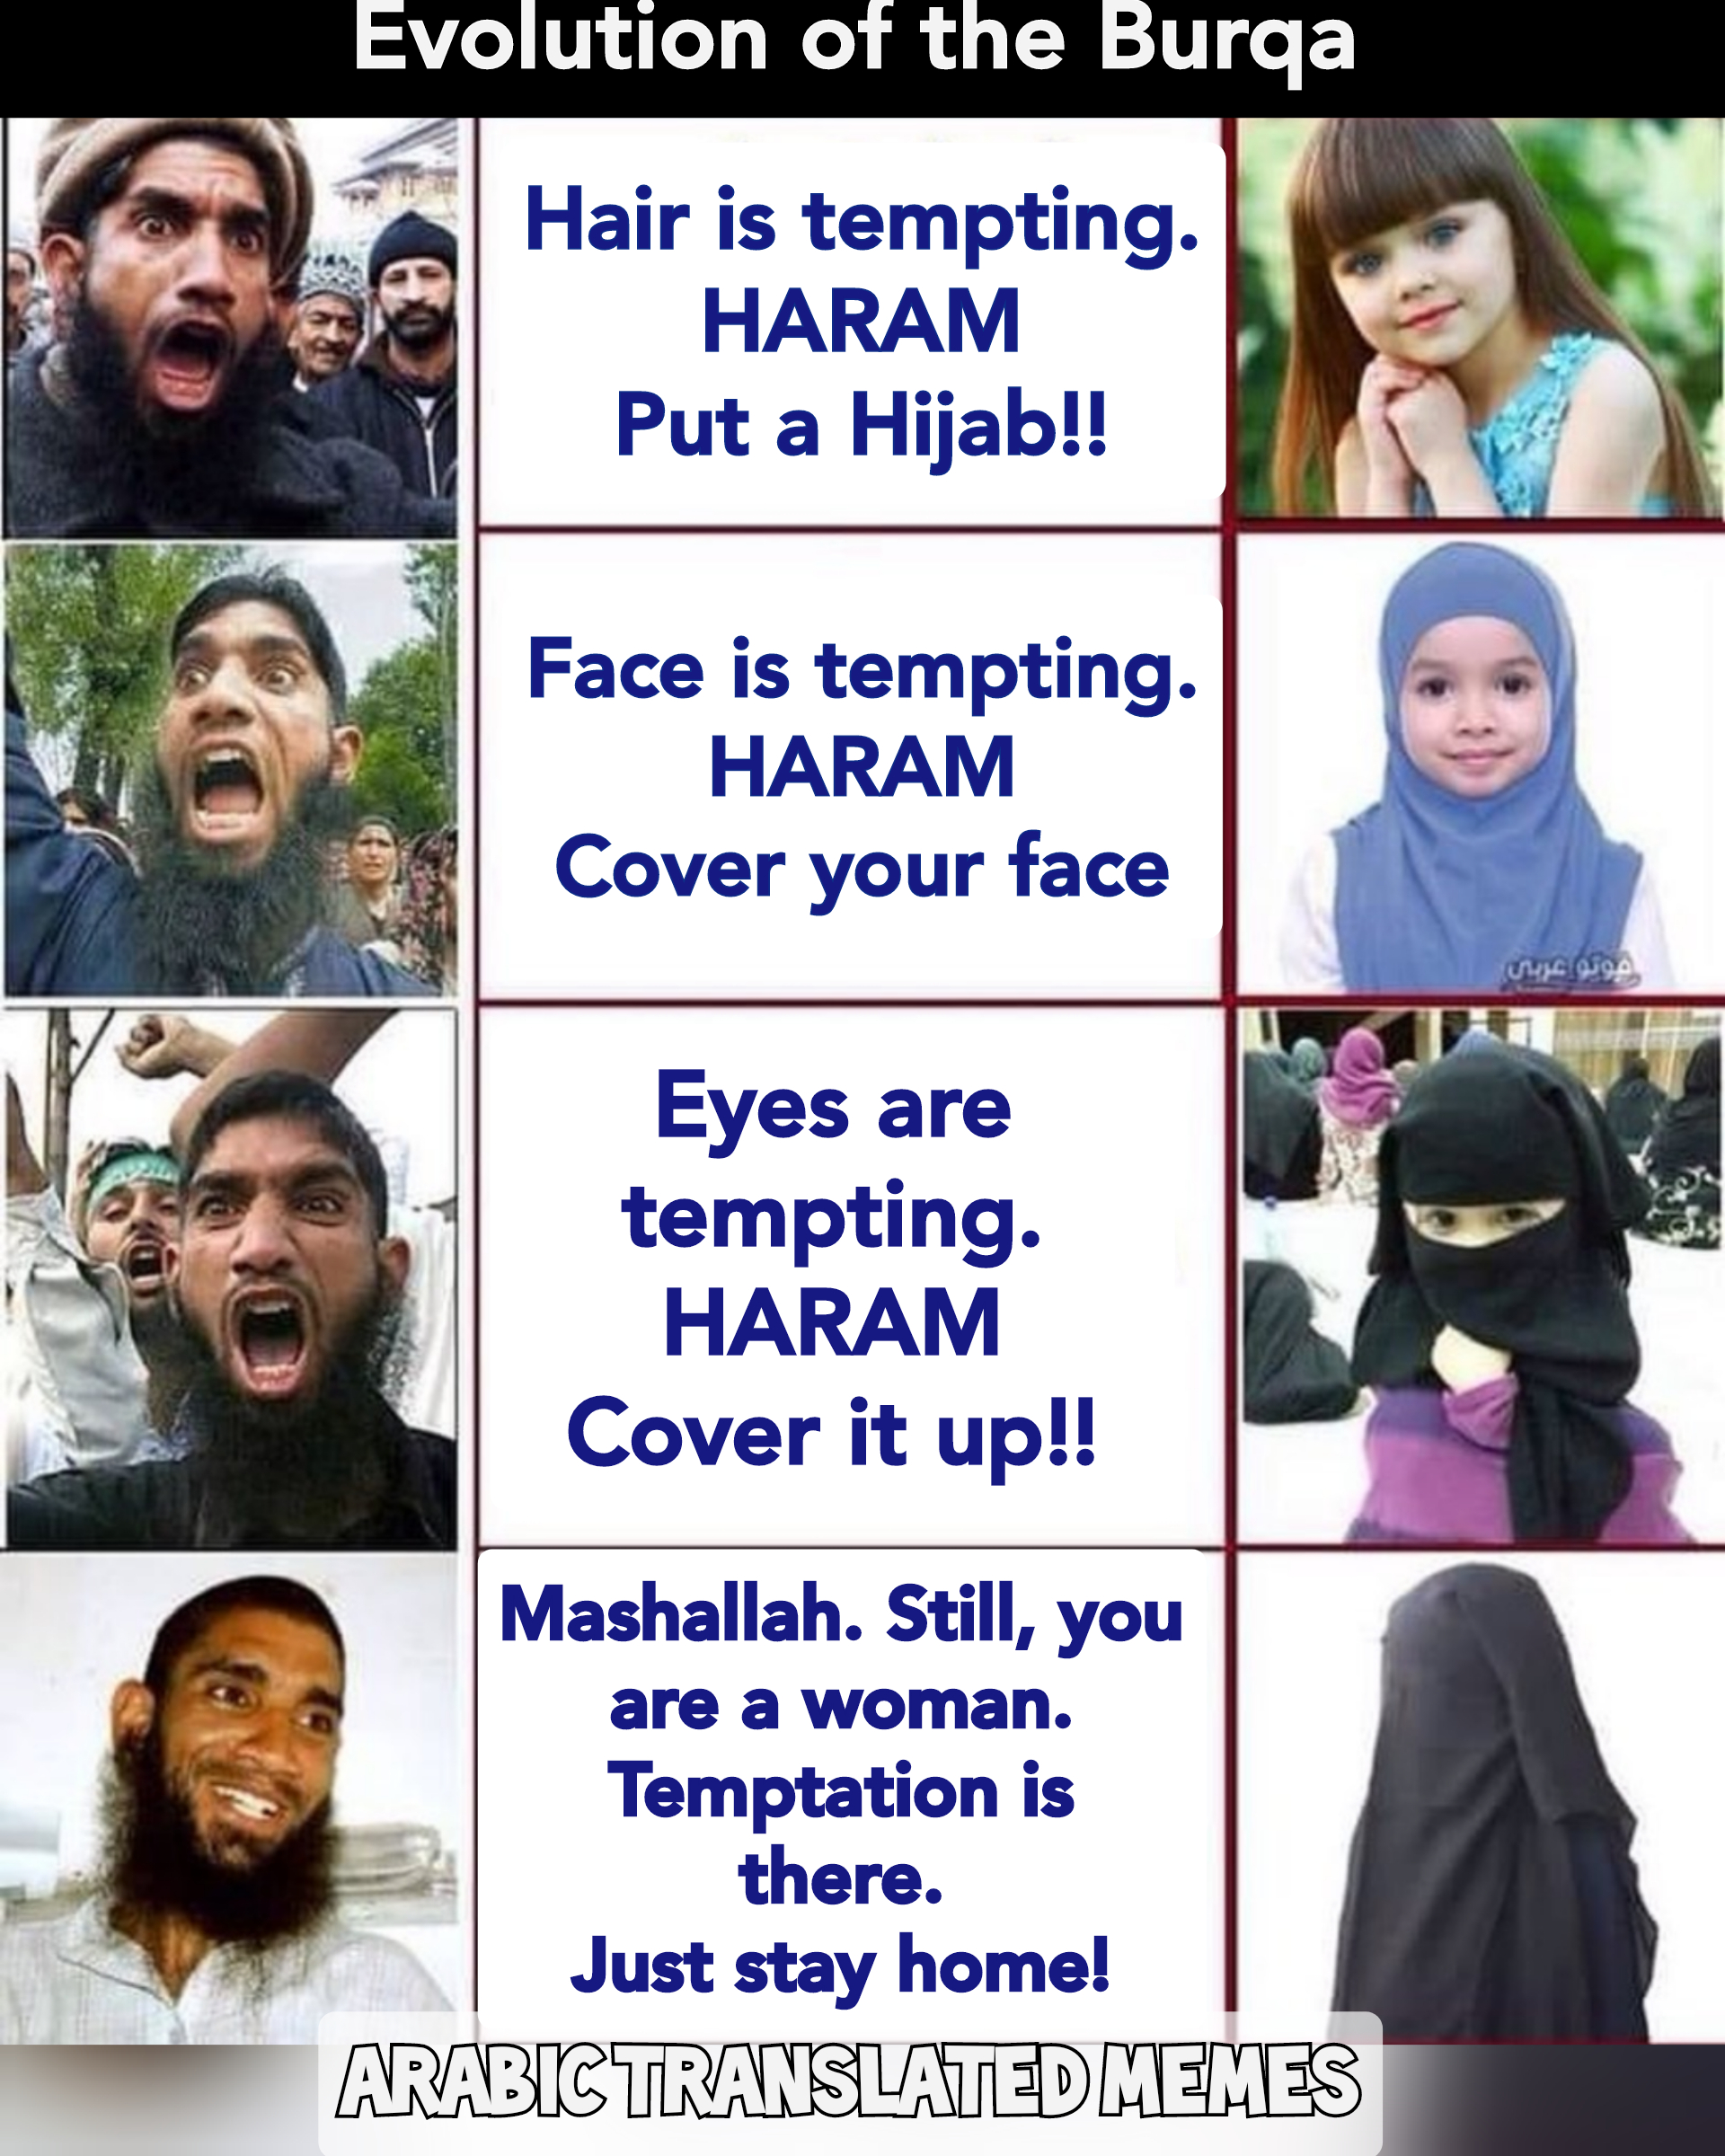 Showing face in Islam